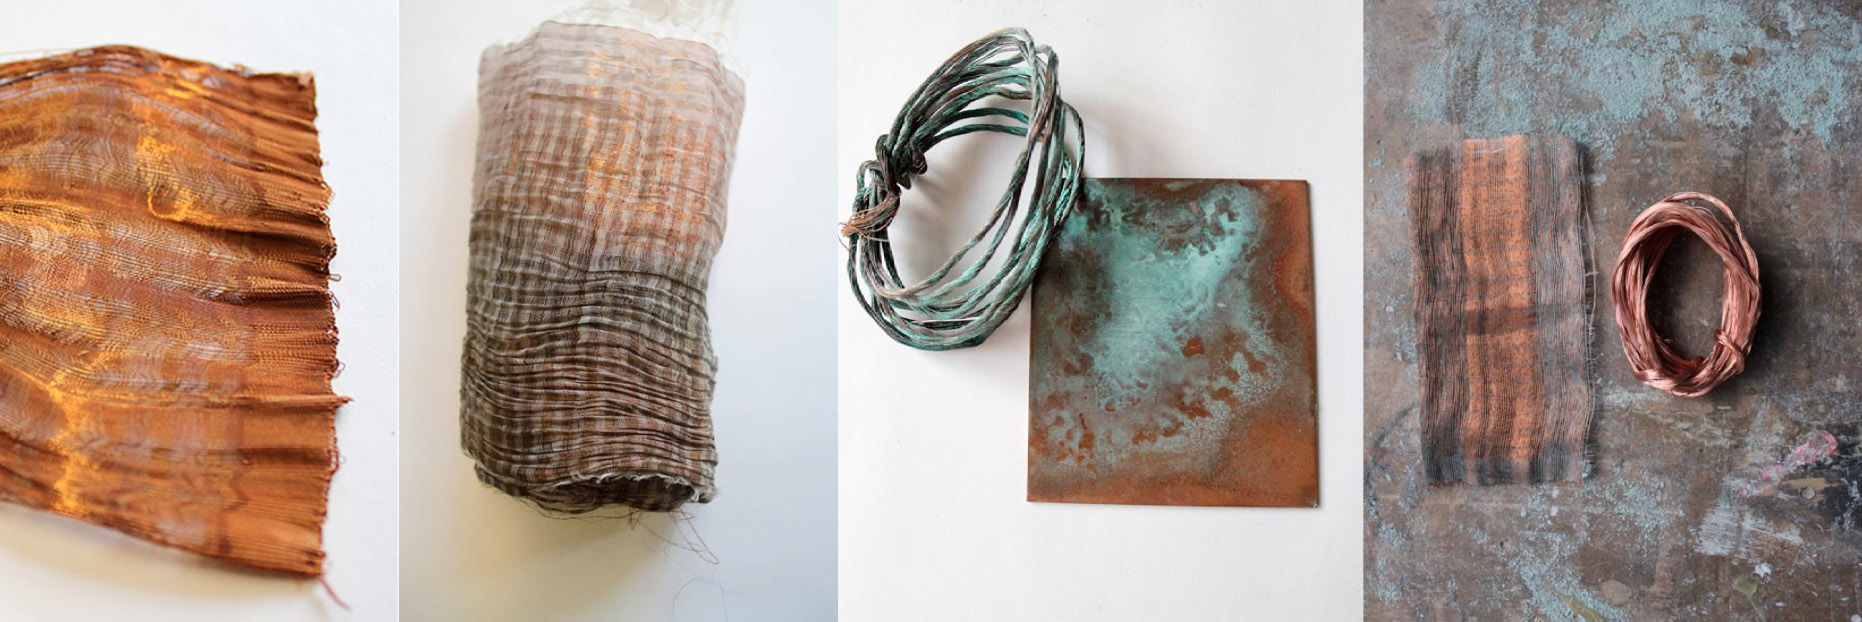 Woven and patinated textiles created from Copper Wire and Paper Yarn, by Neha Lad